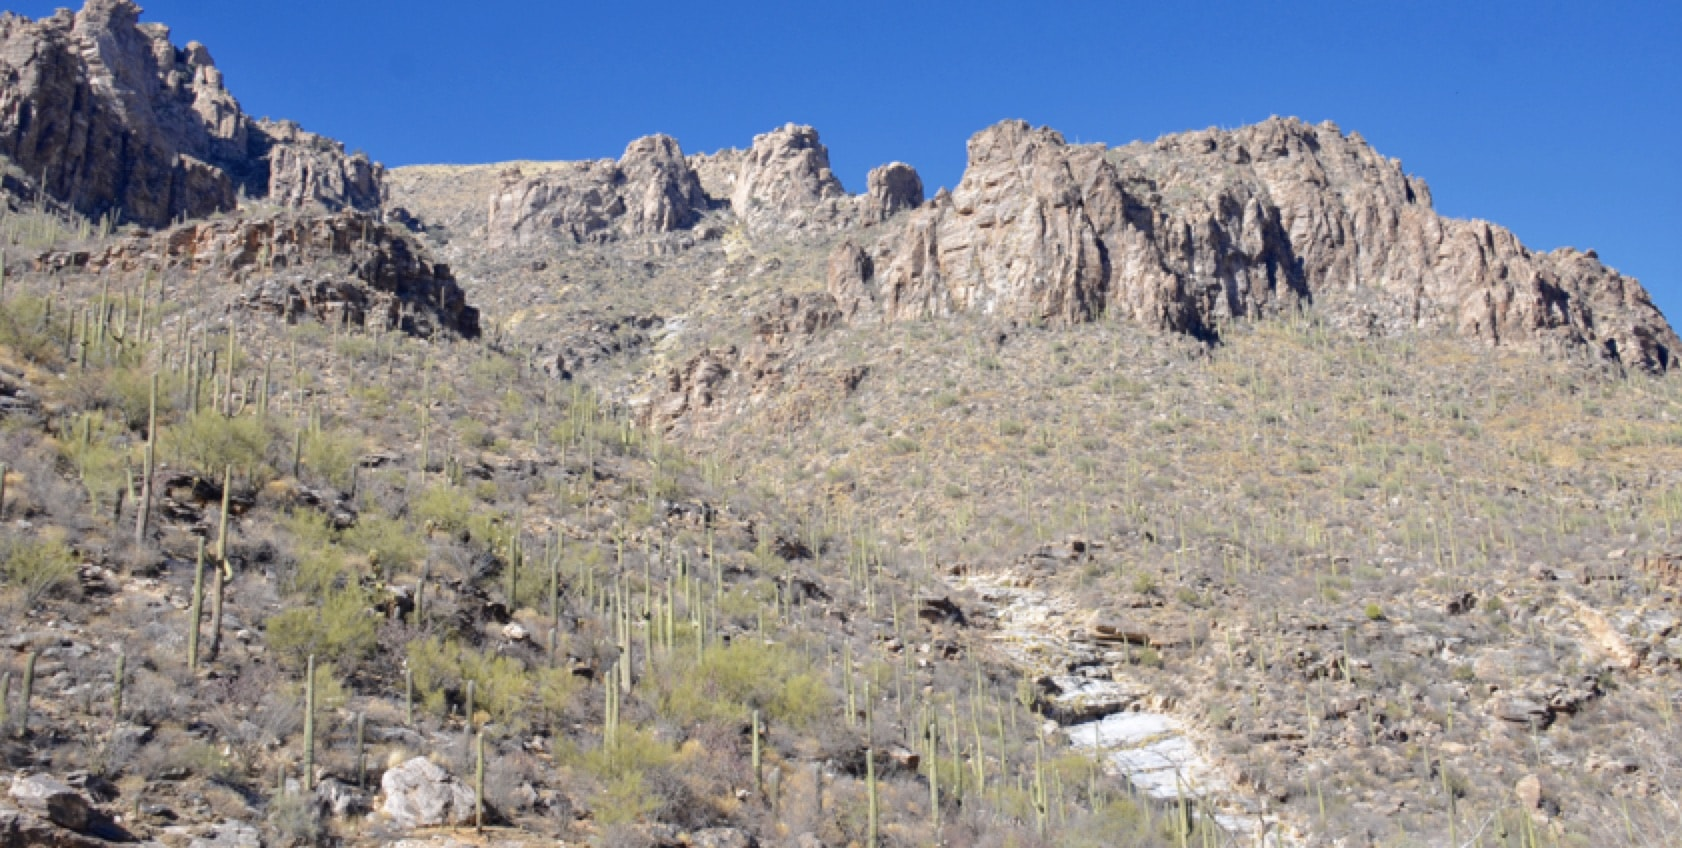 View of the Sabino Canyon neat the 2019 INMR WORLD CONGRESS 2019 INMR WORLD CONGRESS Update on the 2019 INMR WORLD CONGRESS, Oct 20-23, 2019: Westin La Paloma Tucson, Arizona tucson